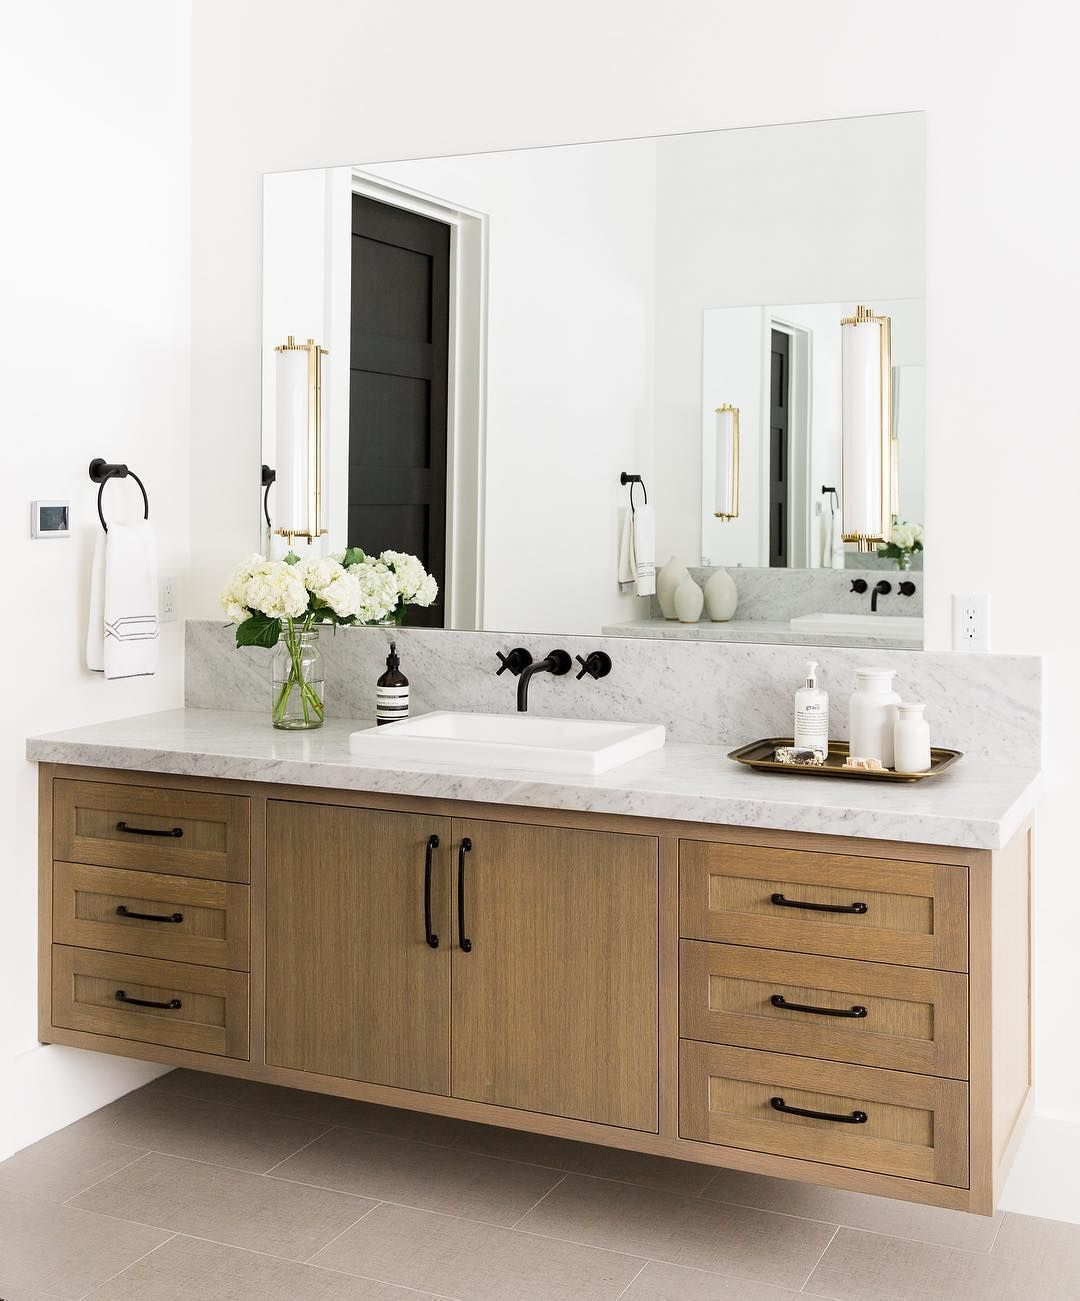 Bathroom Sconces Above Mirror brass sconces over plate mirror stained wood vanity black matte